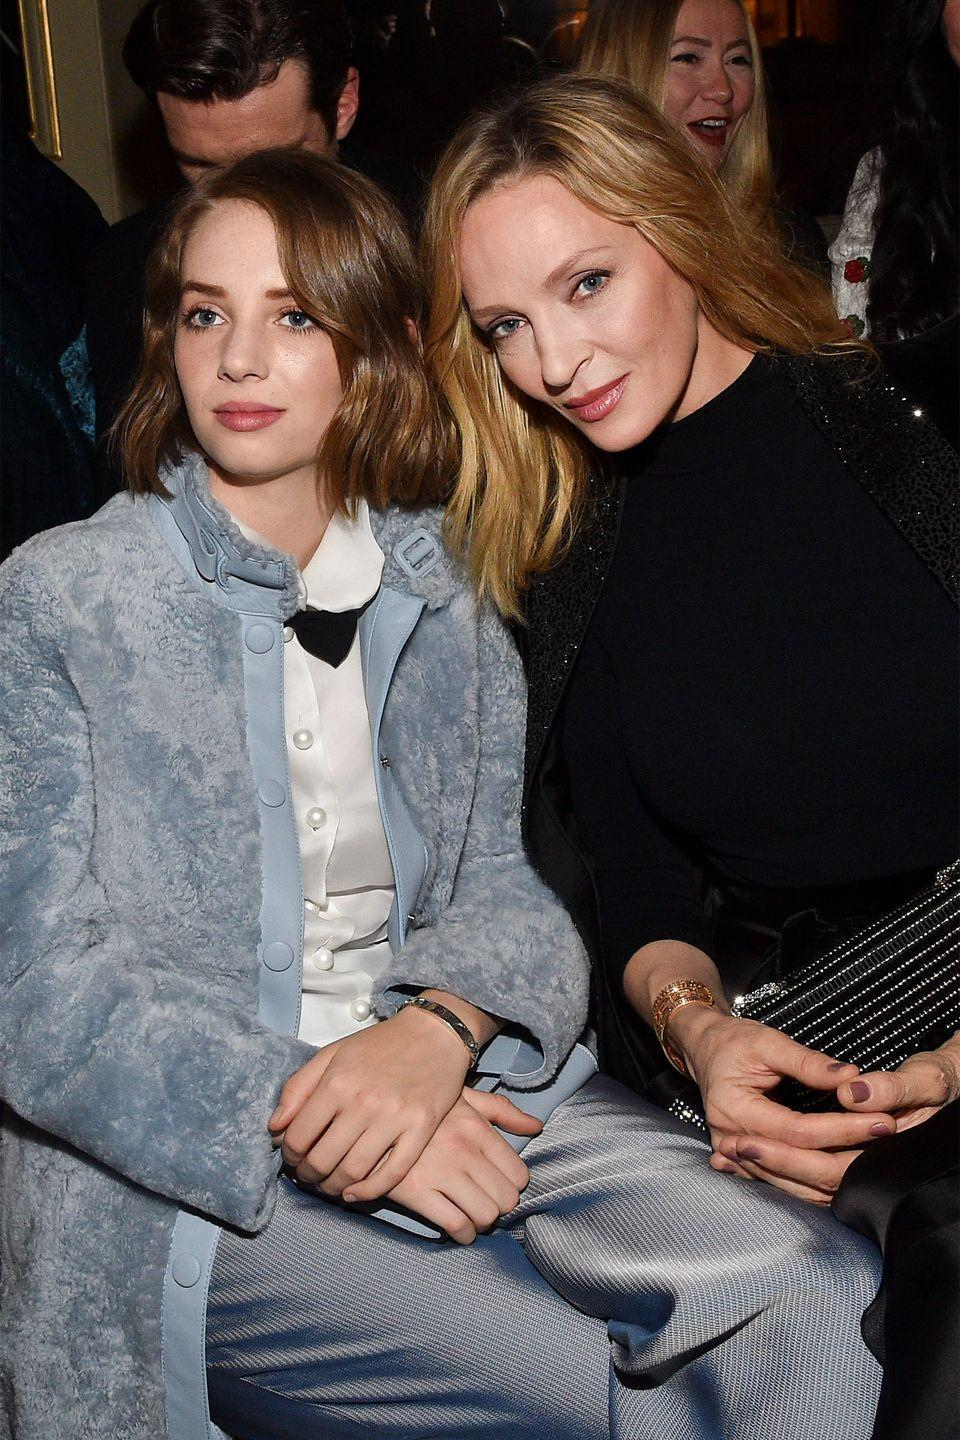 <p><em>Stranger Things</em> actress Maya Hawke mirrors the demeanor and strong facial features of her mother, <em>Kill Bill</em> actress Uma Thurman. Check out their similar eyes, nose, and lips!</p>